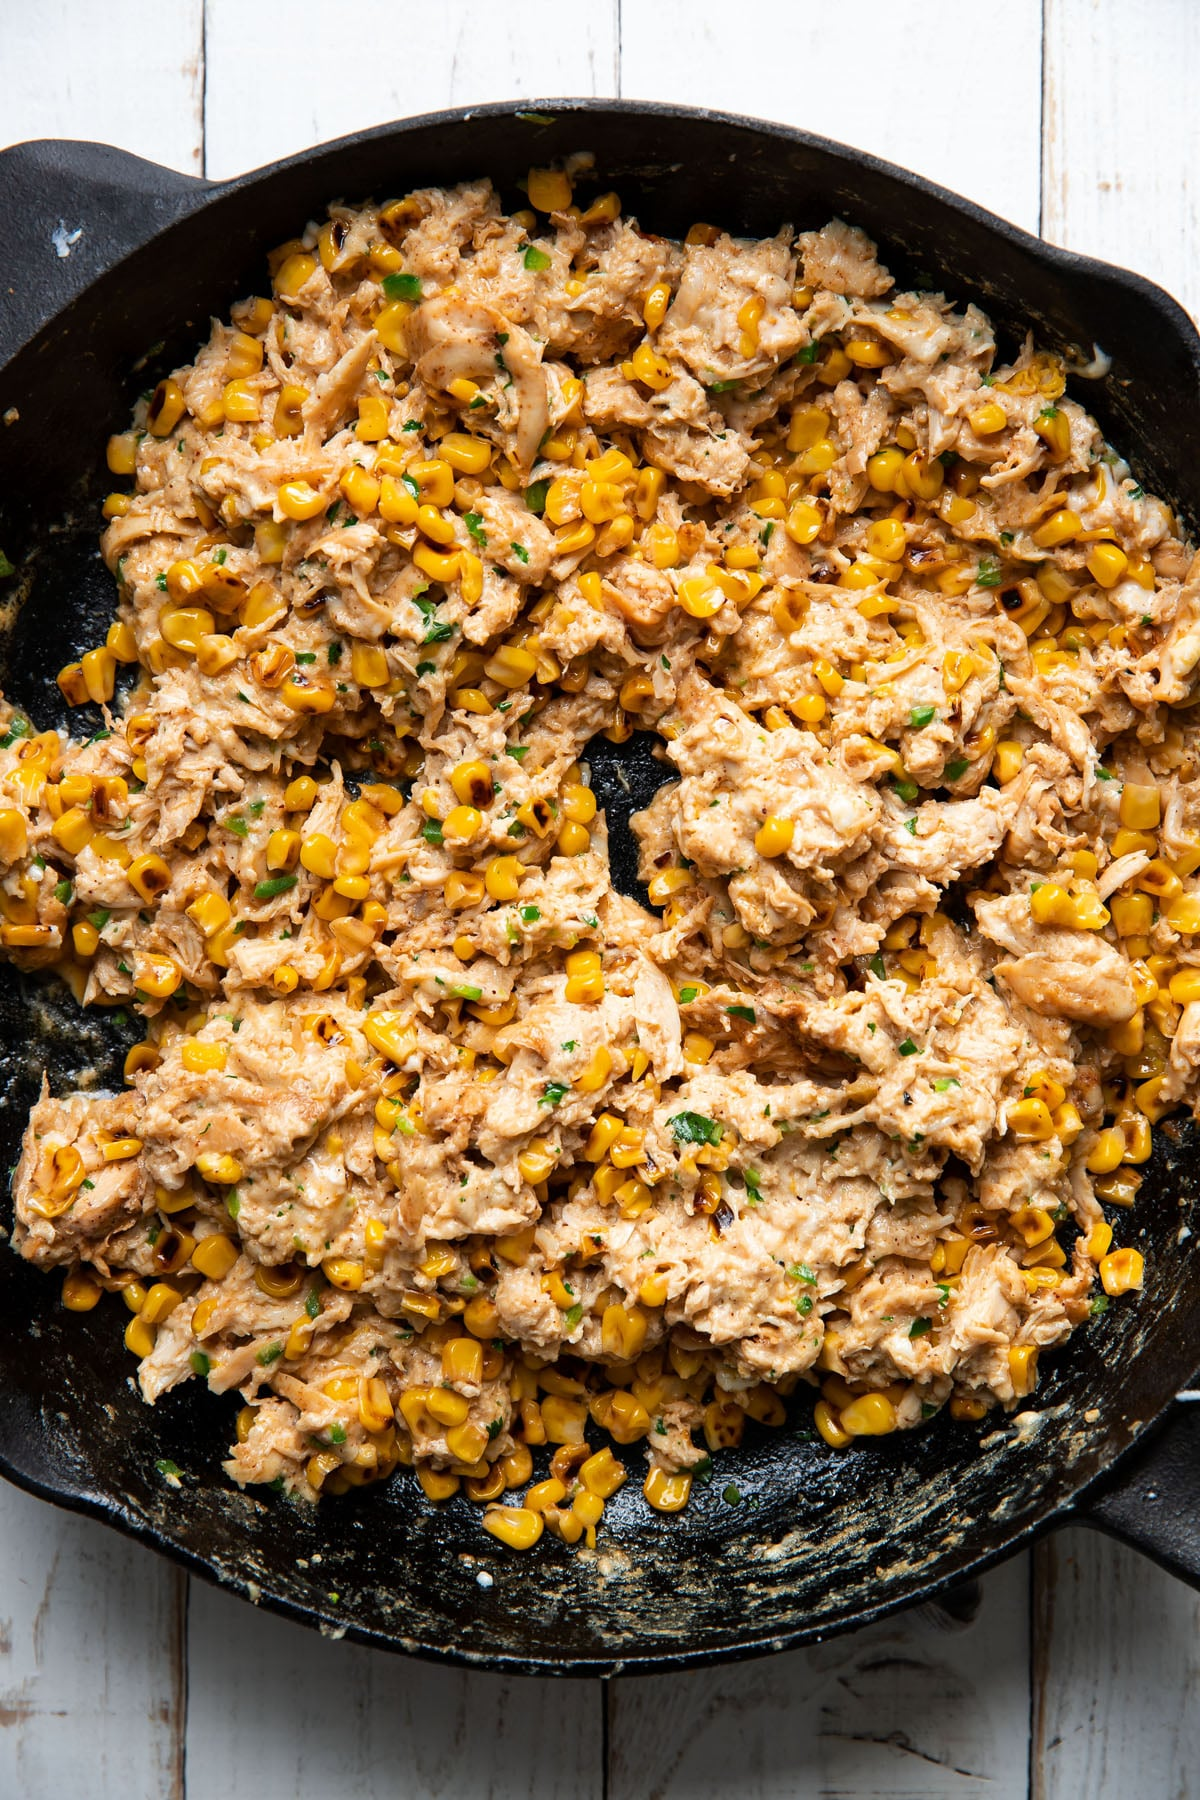 shredded chicken and mexican street corn mixed together in a skillet